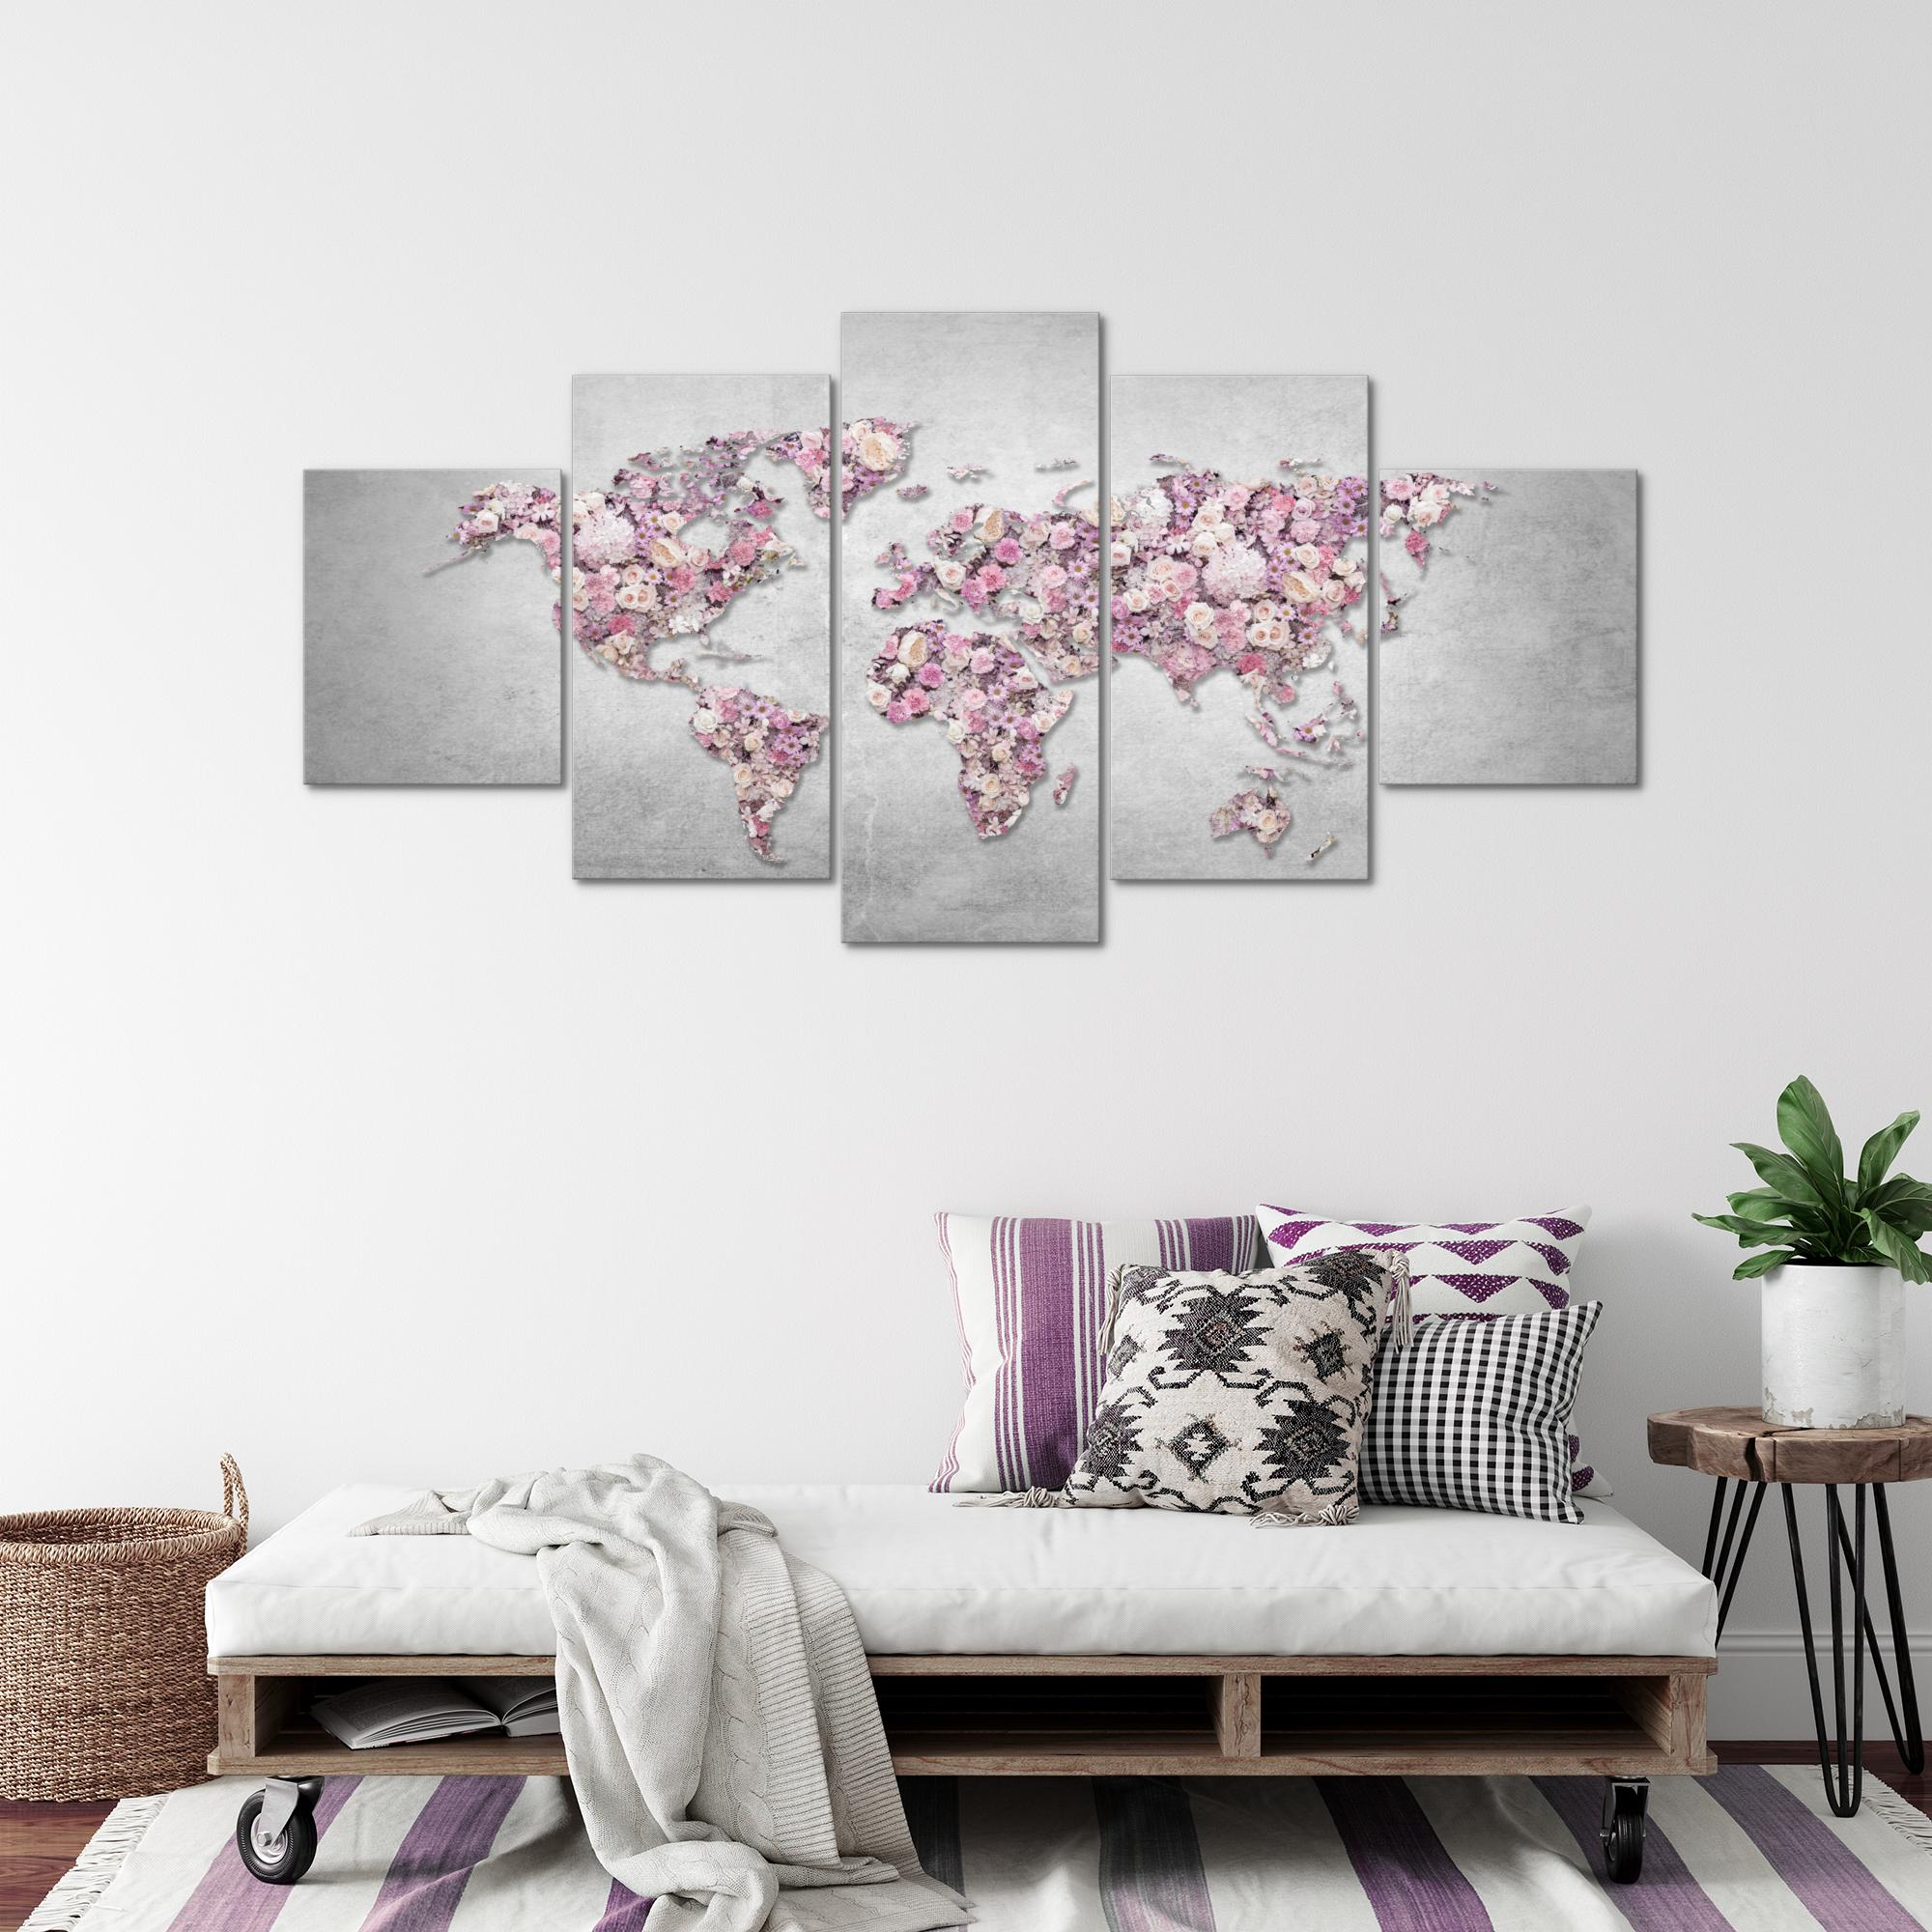 weltkarte blumen bild kunstdruck auf vlies leinwand xxl dekoration 02325p. Black Bedroom Furniture Sets. Home Design Ideas